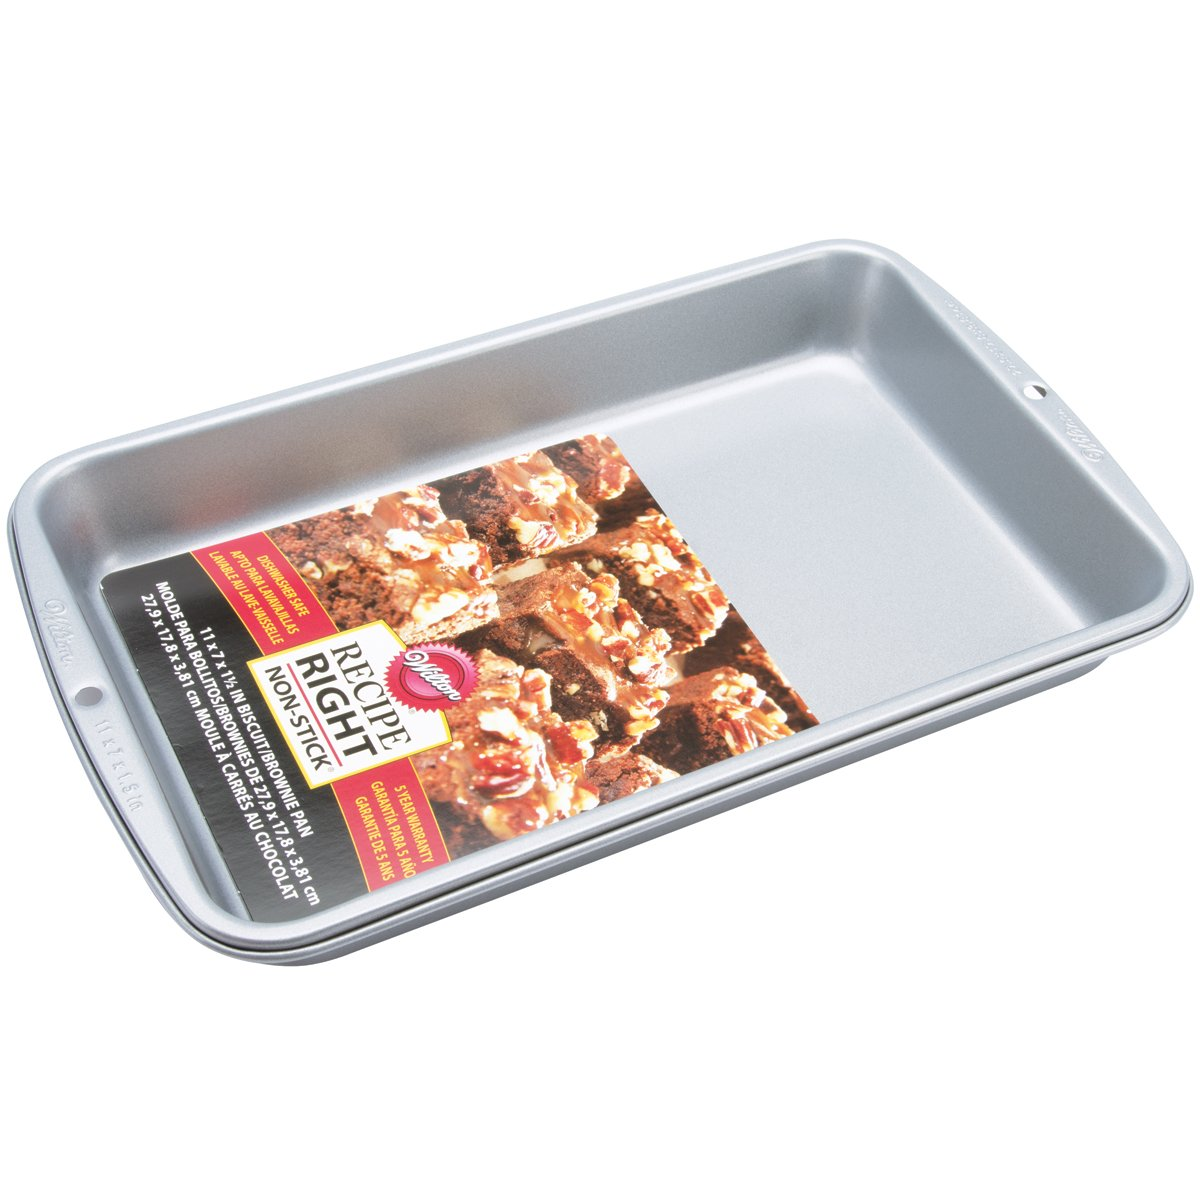 Wilton Recipe Right 11 Inch x 7 Inch x 0.5 inch Biscuit Brownie Pan